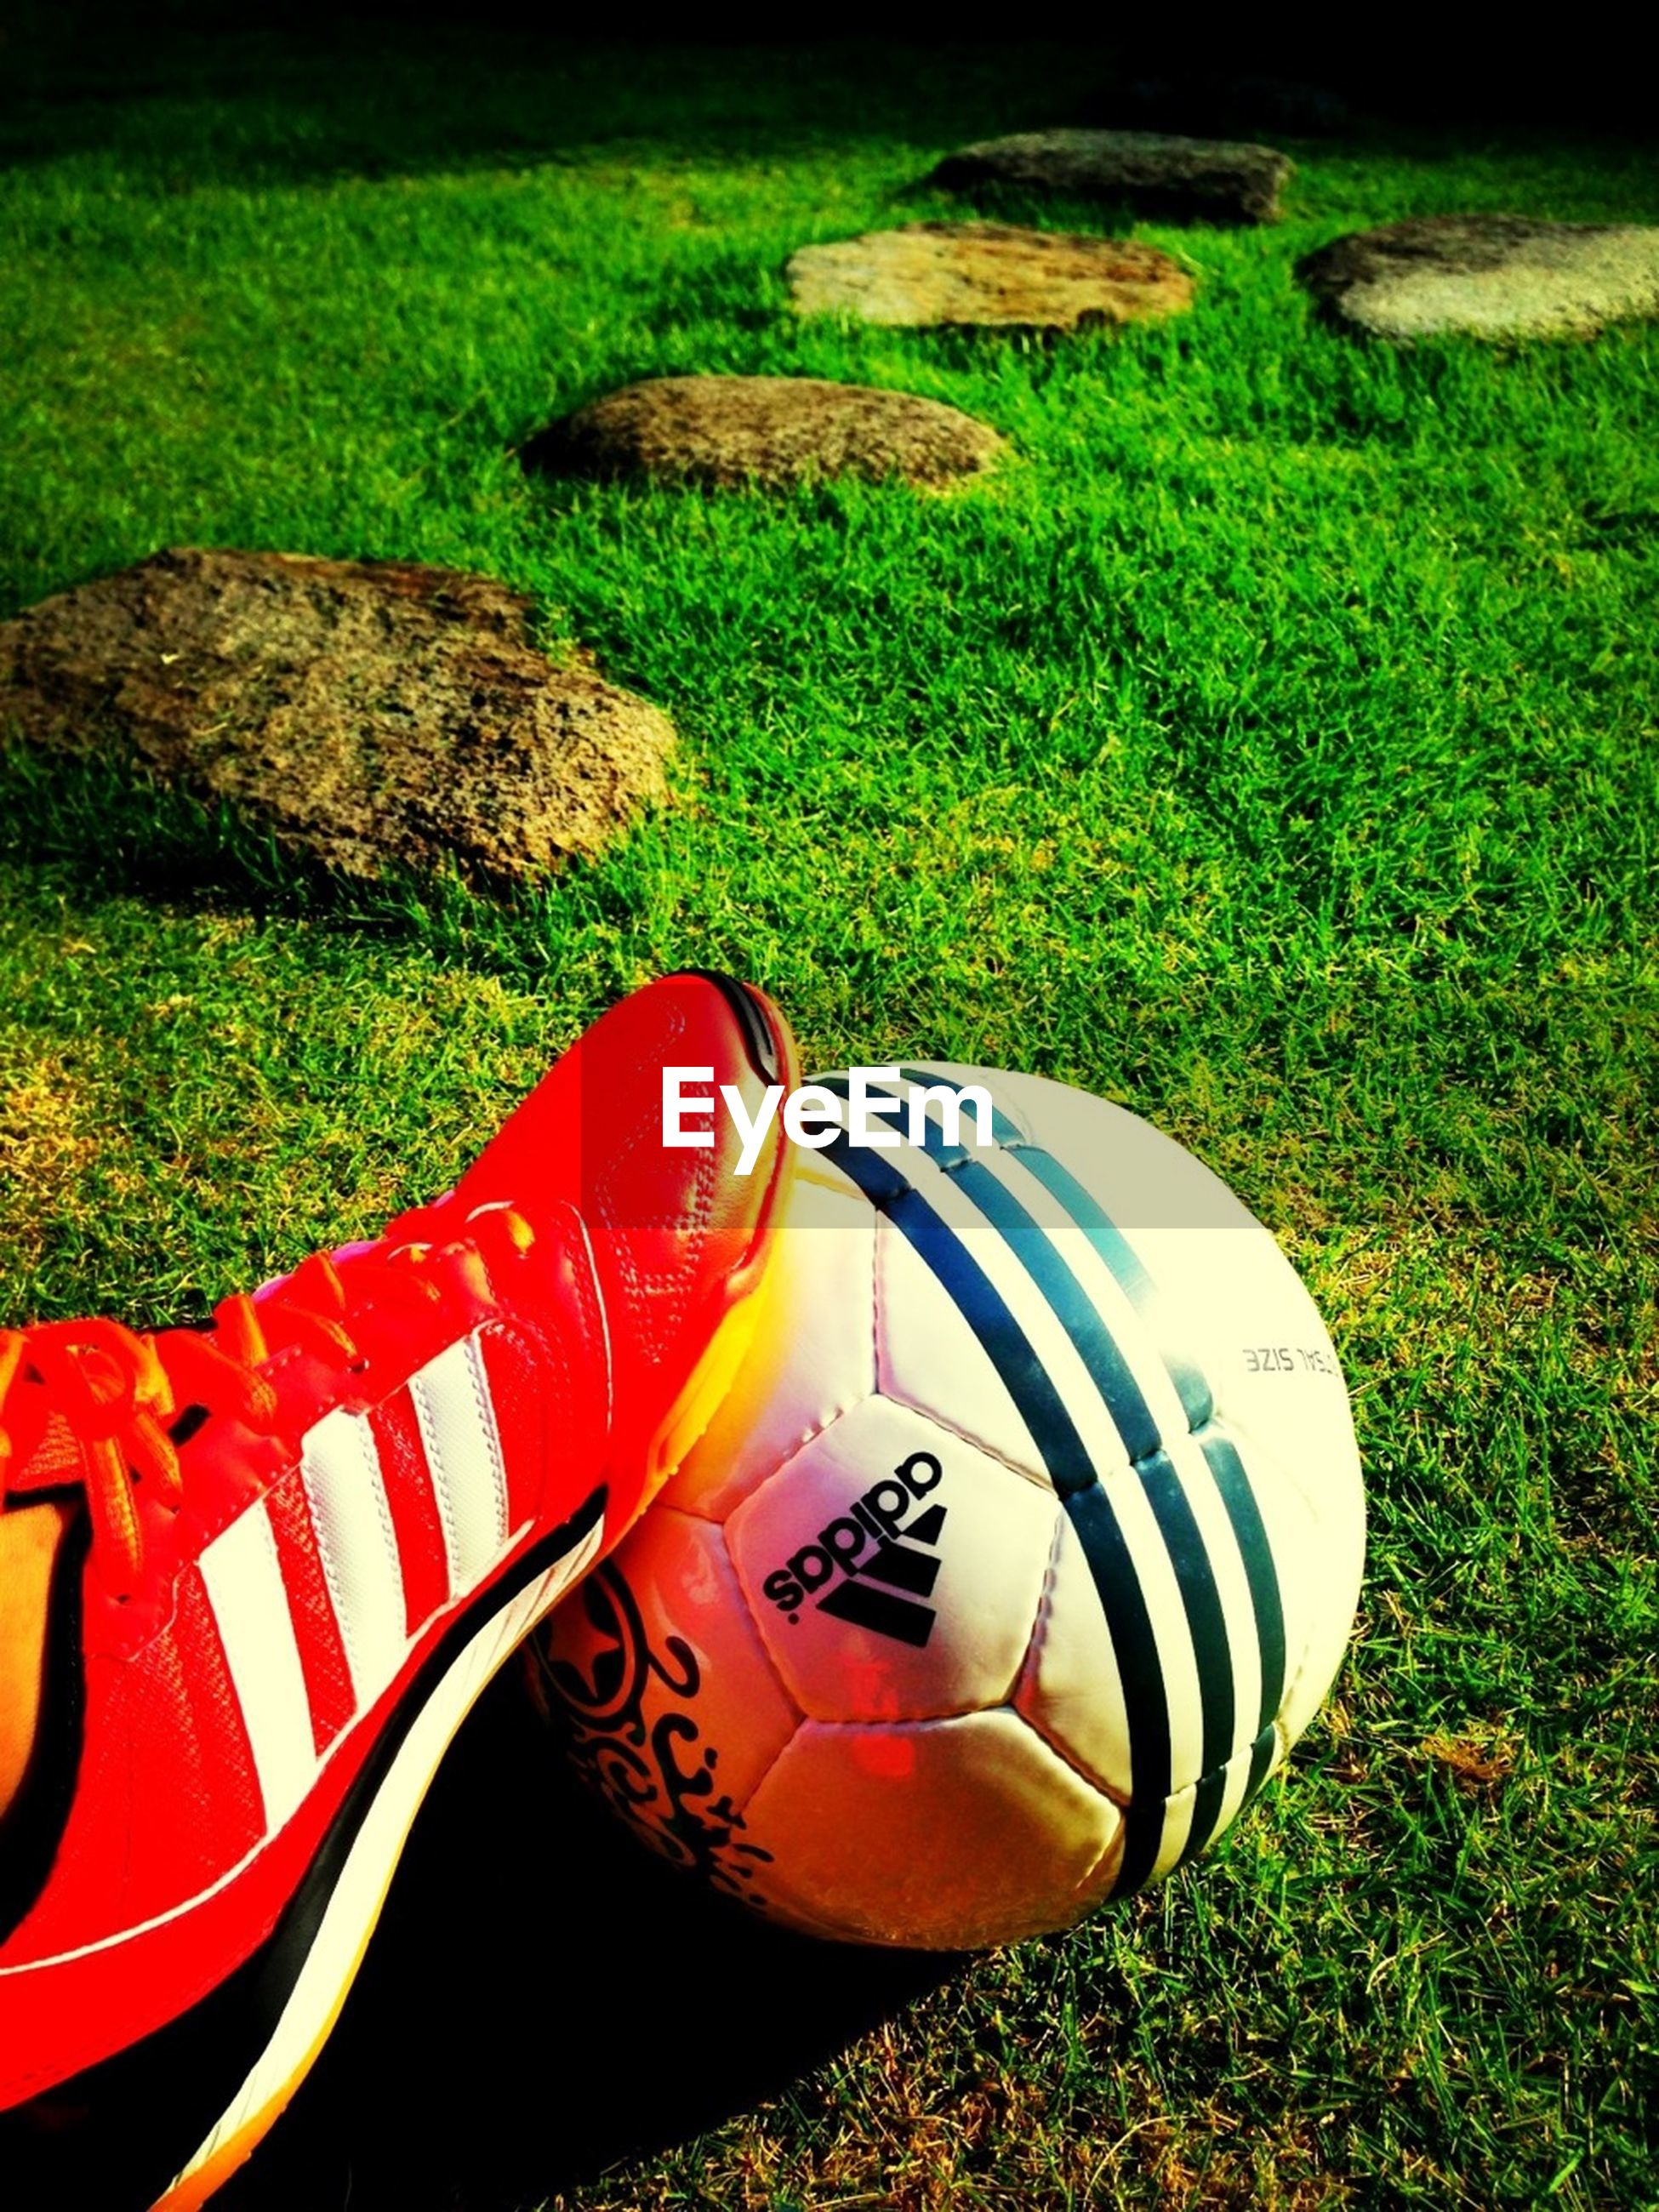 grass, field, grassy, red, shoe, high angle view, close-up, transportation, sport, lawn, green color, sunlight, day, outdoors, no people, park - man made space, toy, absence, footwear, playground